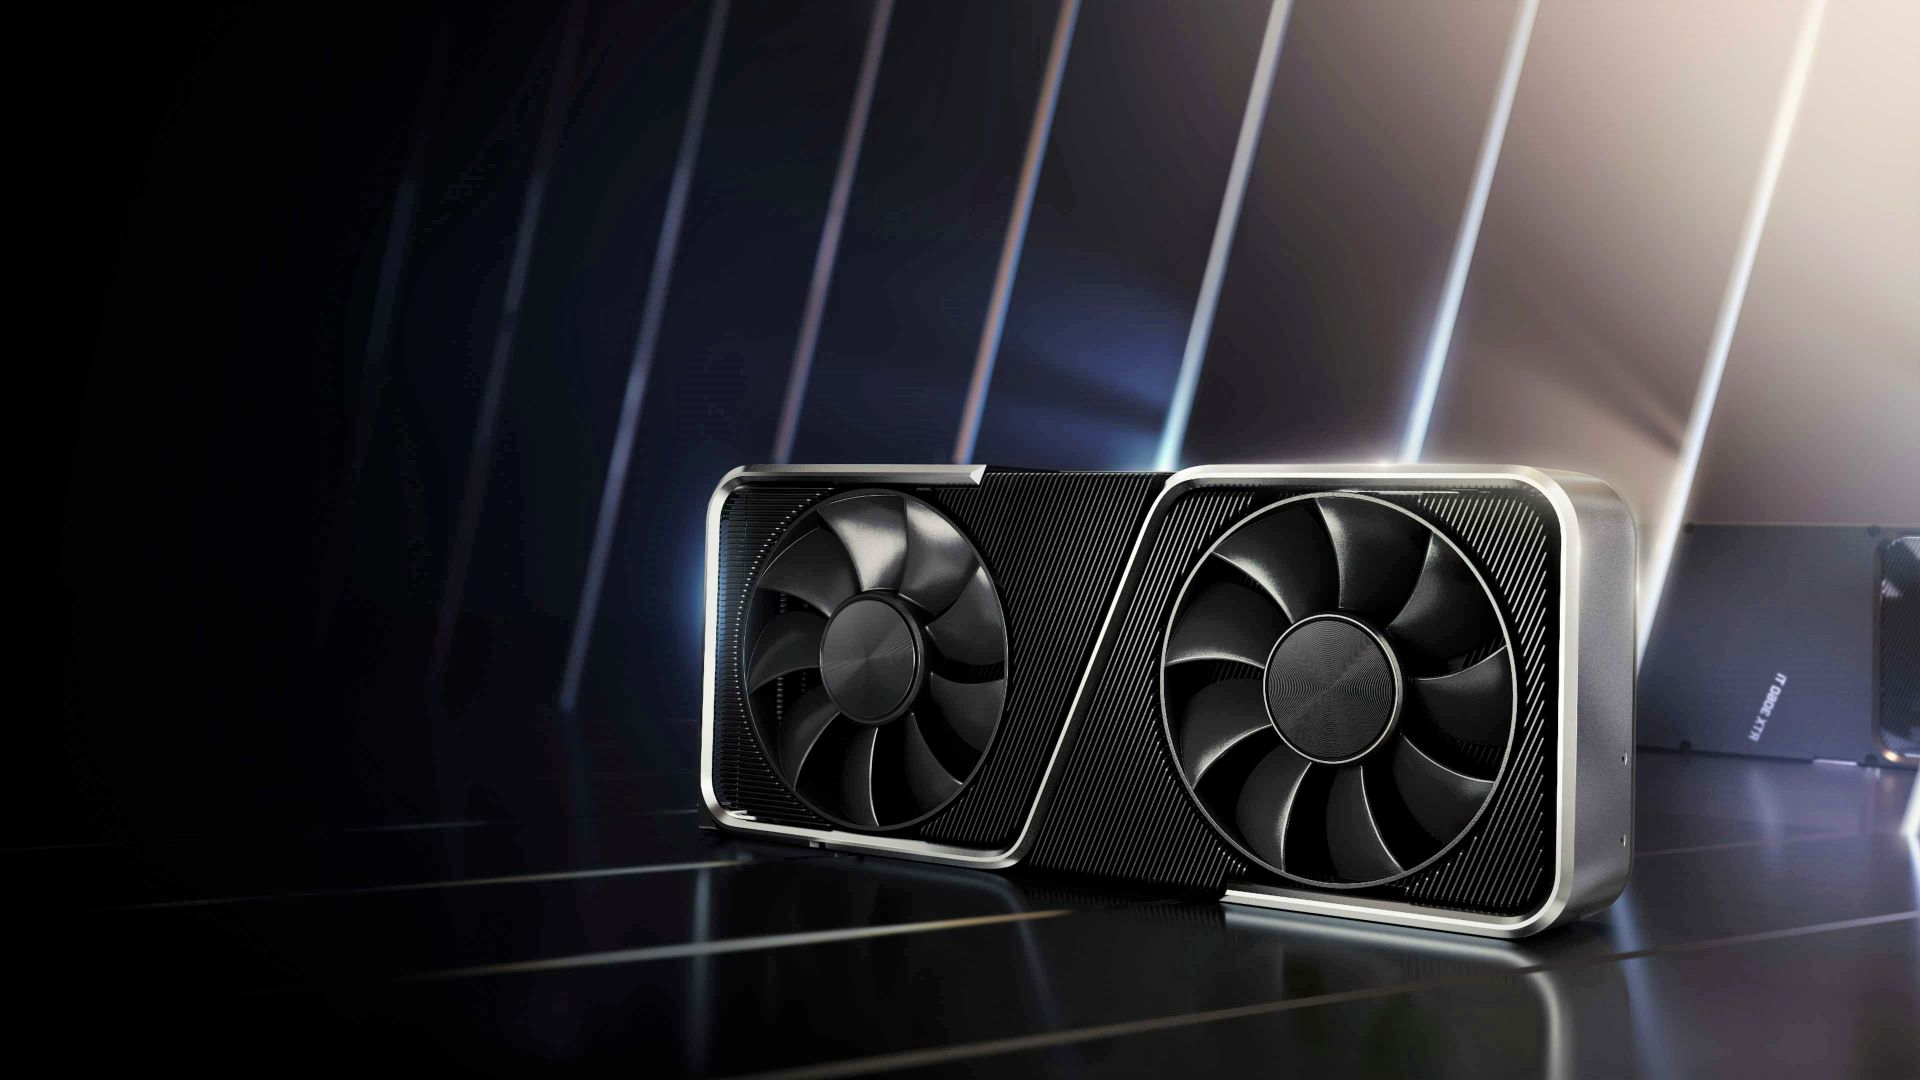 Your next gaming PC GPU could cost 70% more